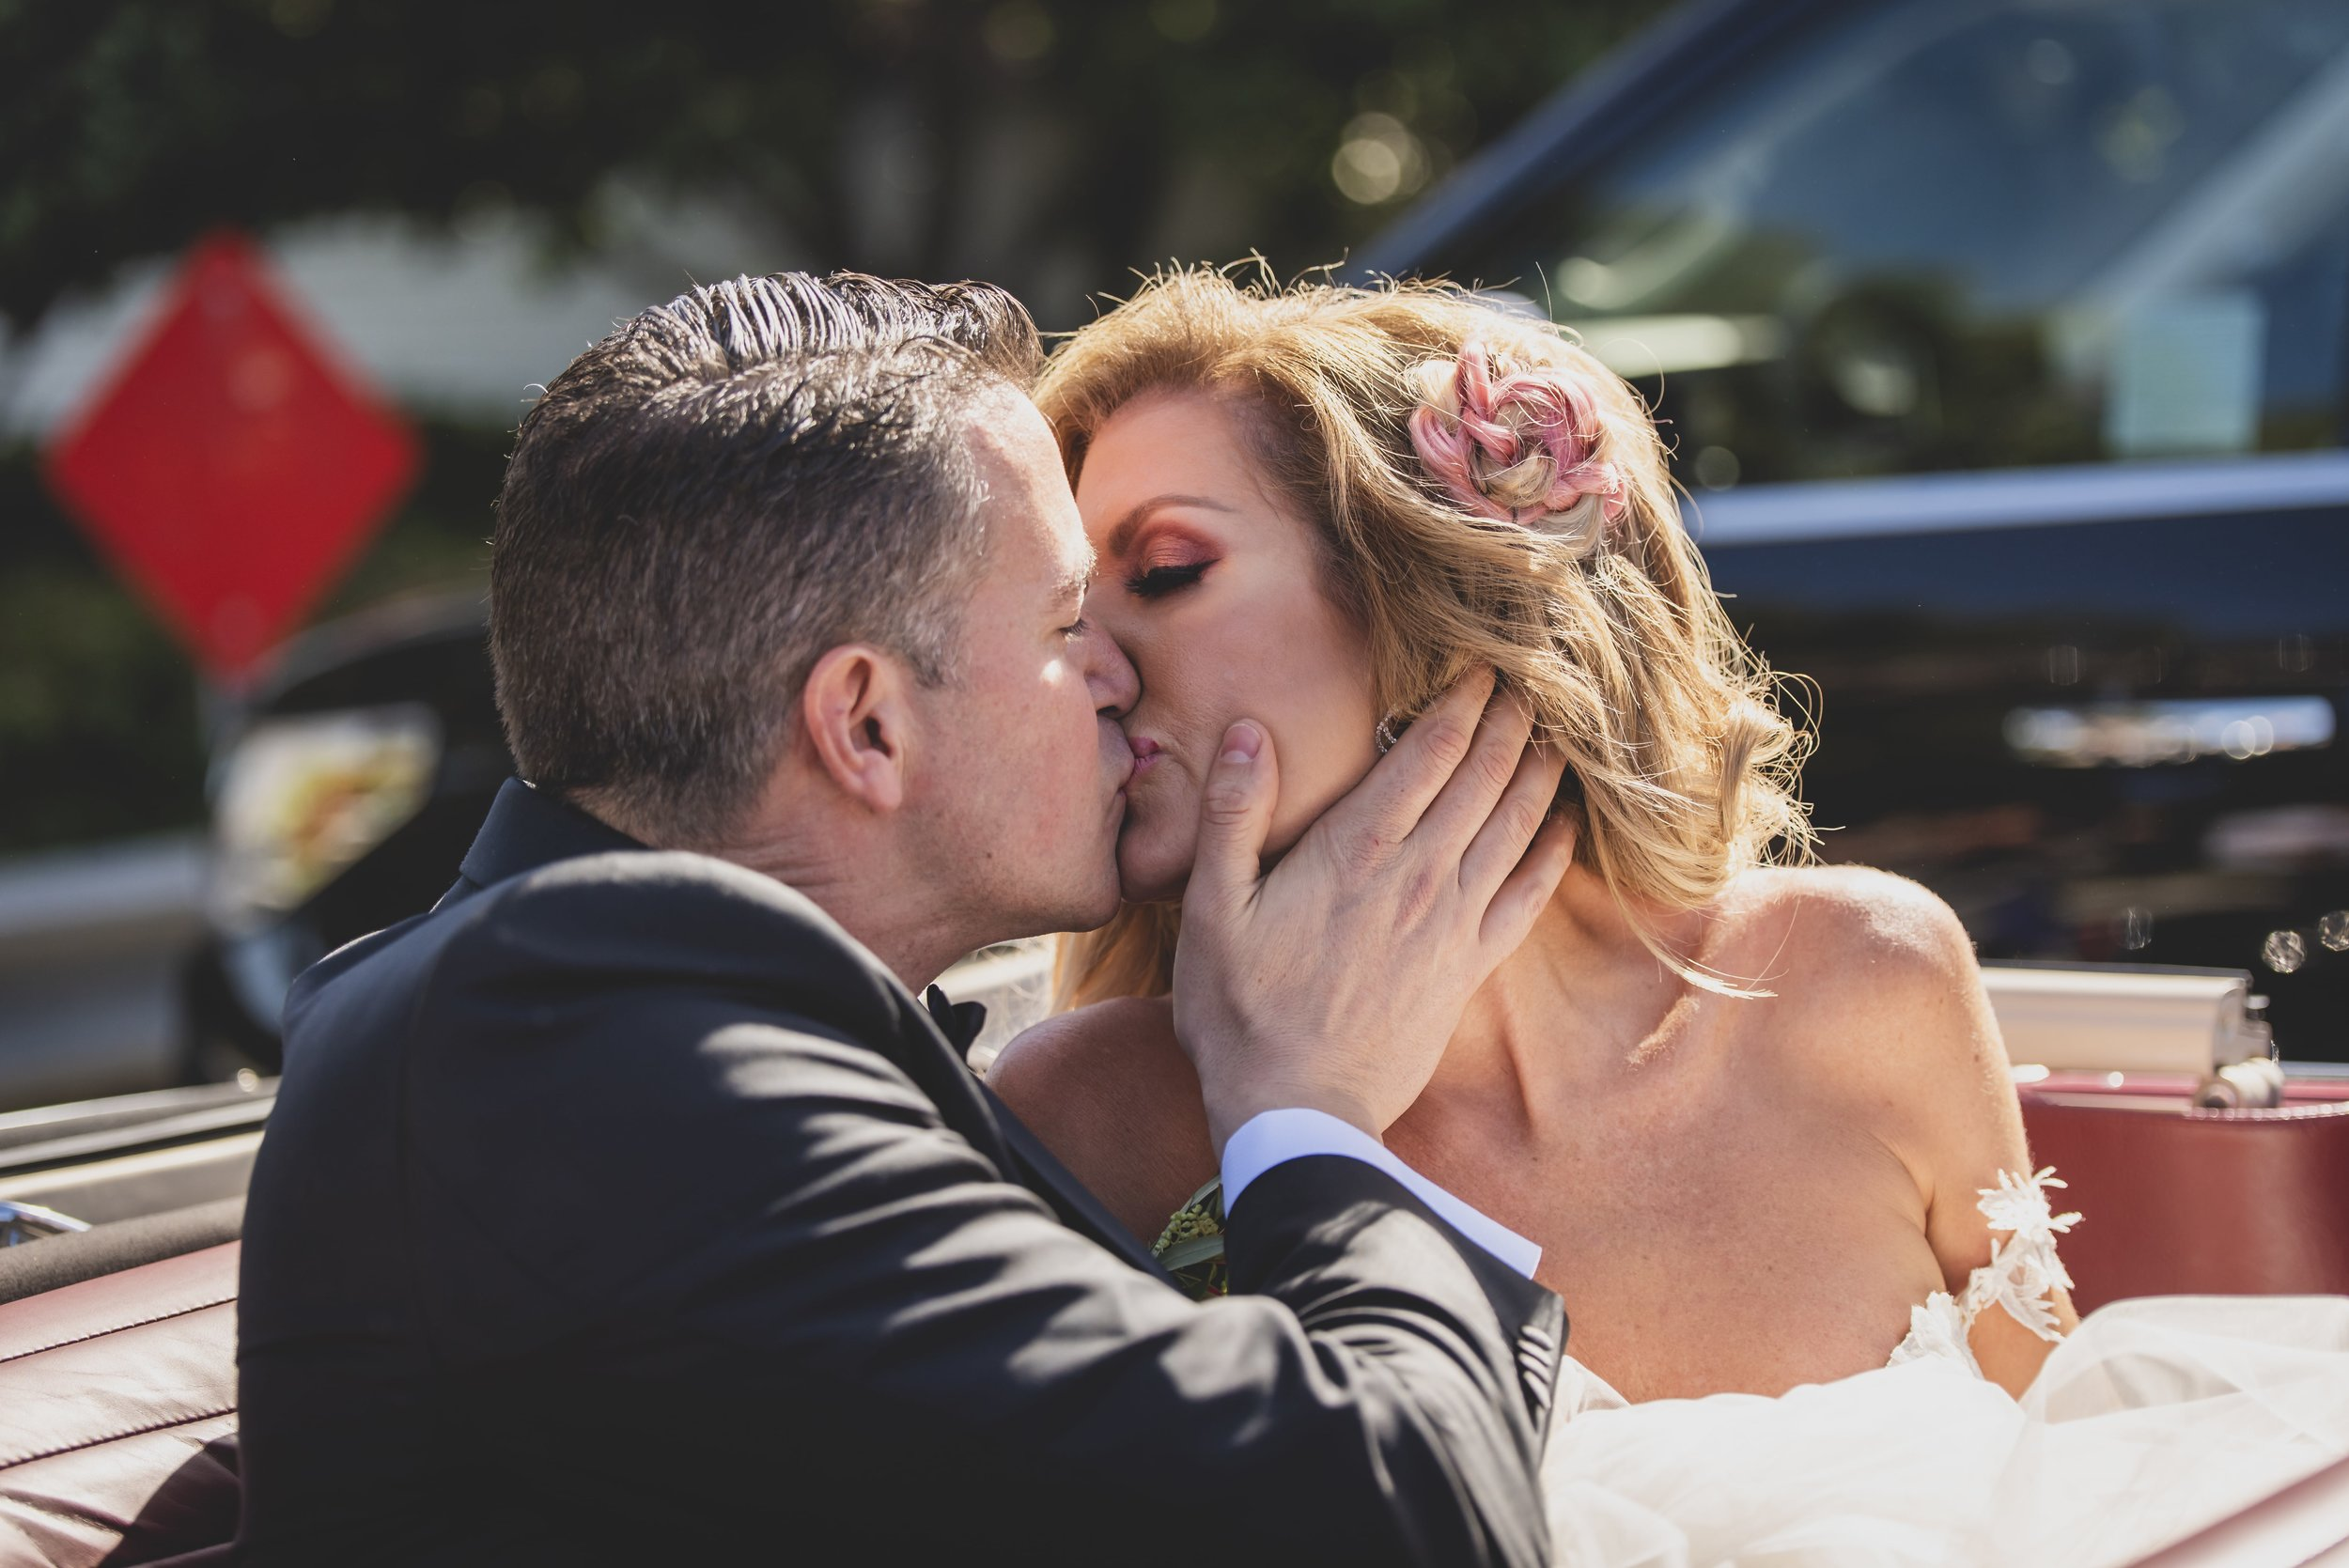 Wedding Photography Packages - Heritage Park, Dana Point, CA -Groom kissing the bride in their red getaway car.